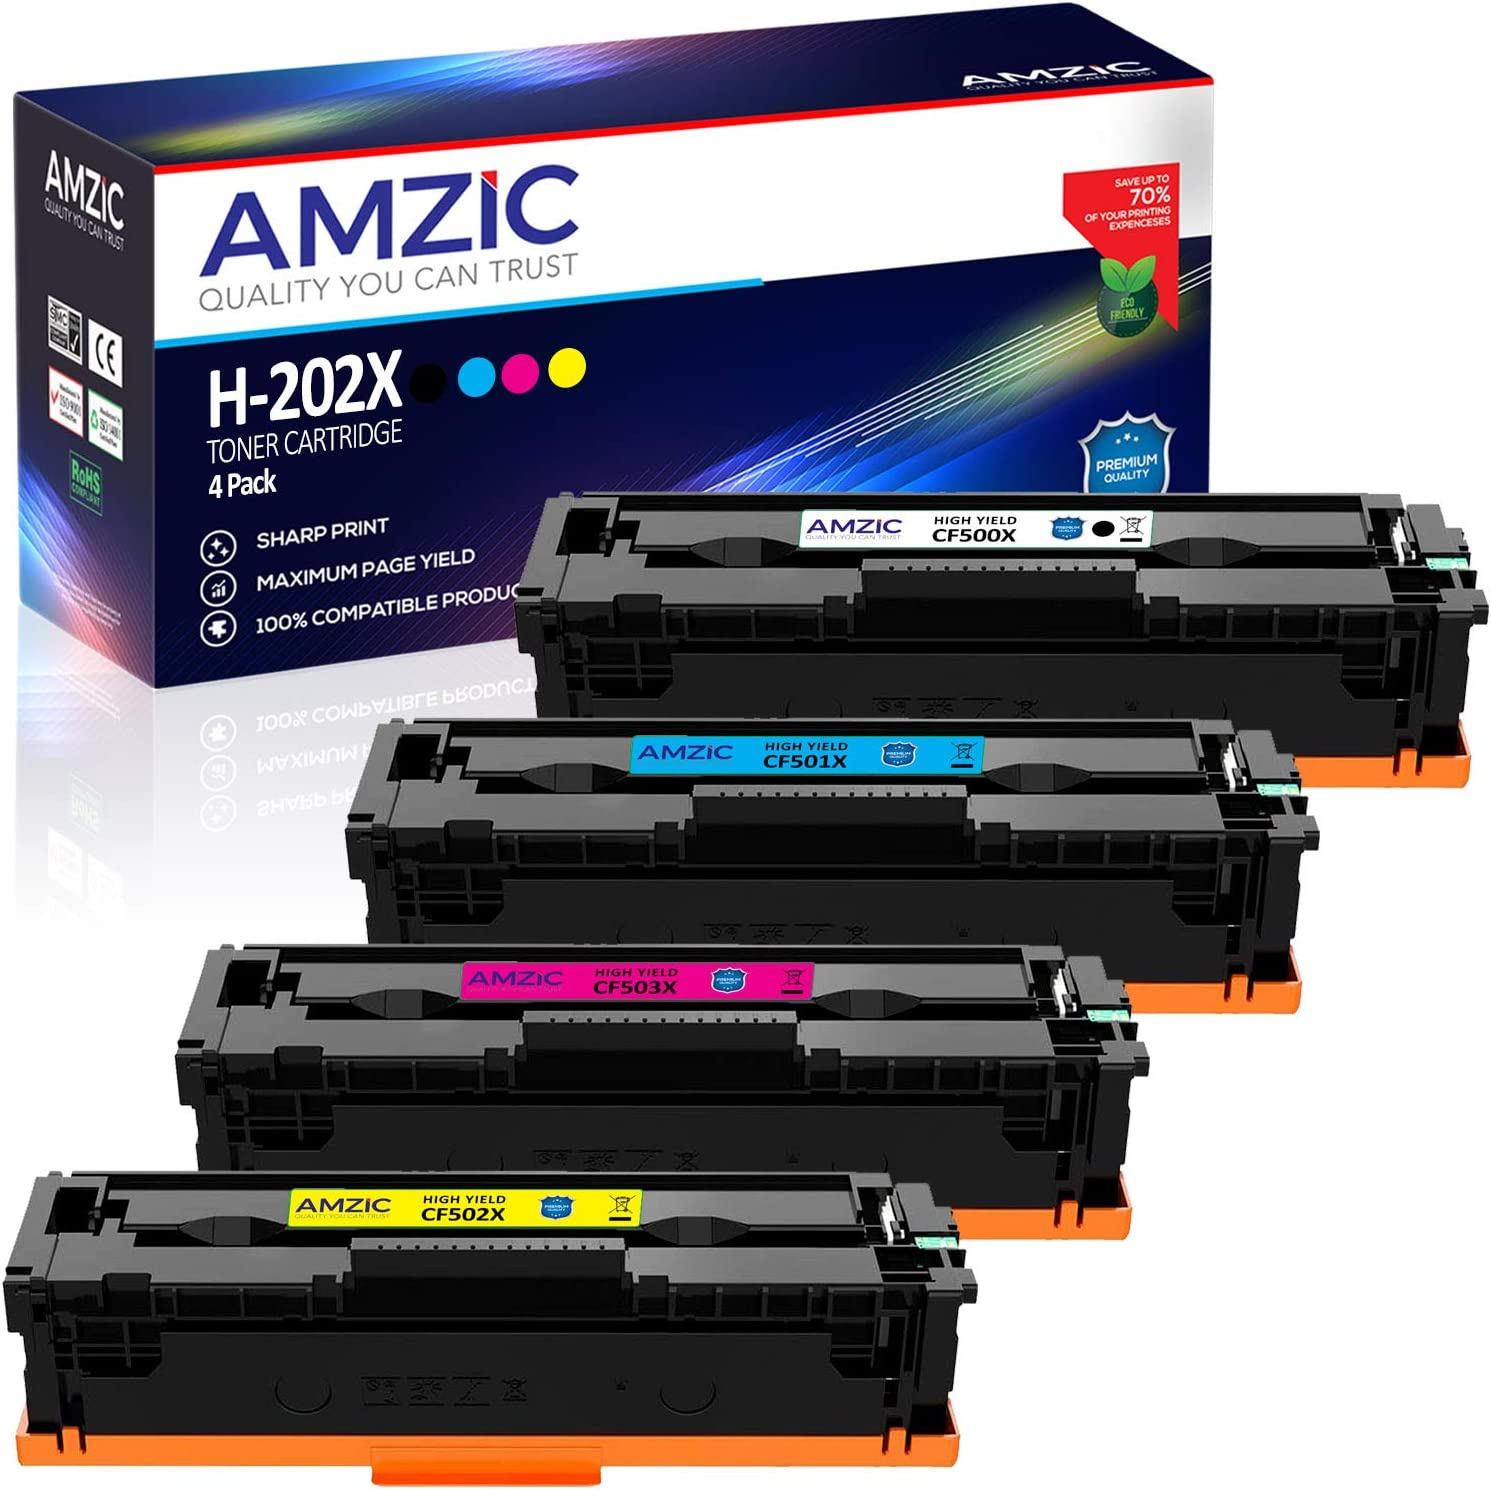 AMZIC Compatible Toner Cartridges Replacement for HP 202X 202A CF500X CF501X CF502X CF503X High Yield for use with HP Color LaserJet Pro MFP M280nw M281fdw M281cdw M254nw (1 Set (4-Pack)